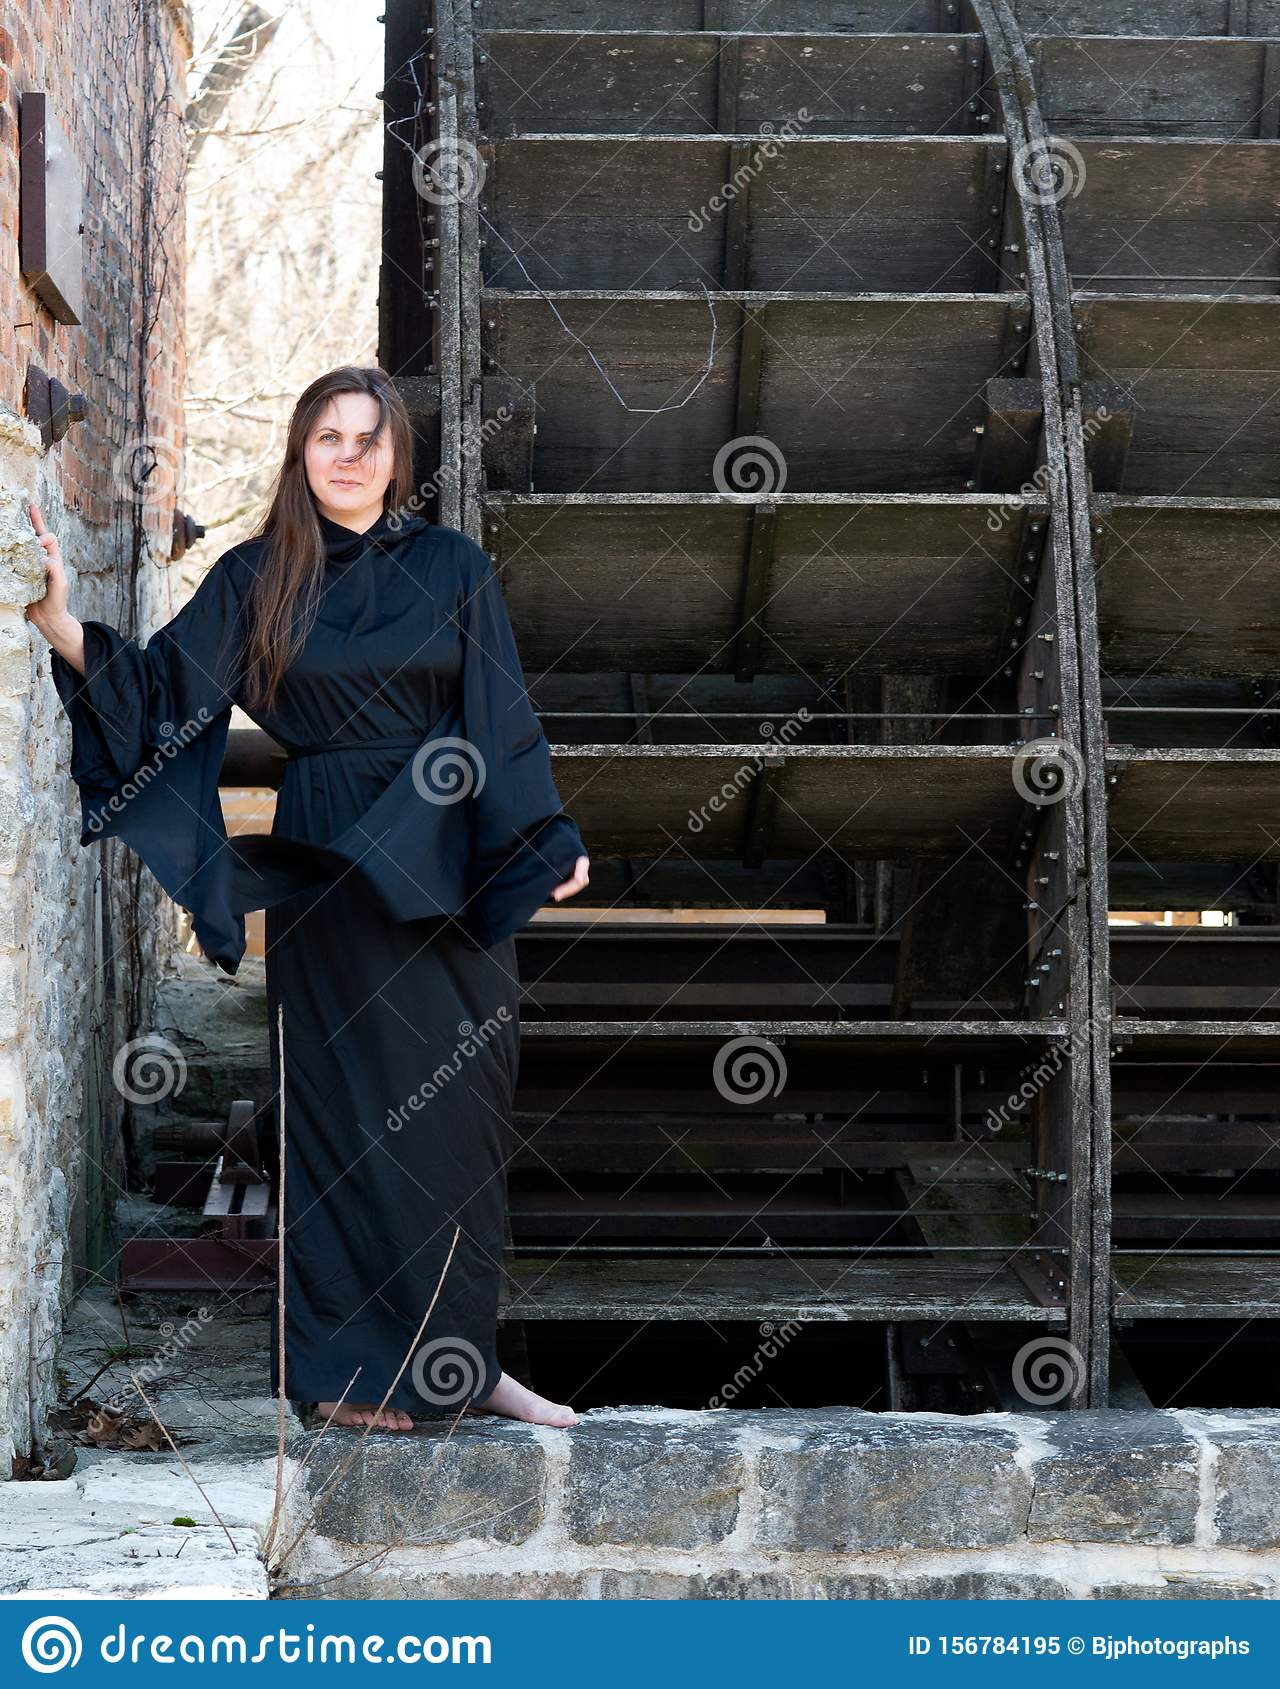 Young Woman With Dark Long Hair In Black Robes In Front Of An Old Wooden Water Mill Witches Halloween Concept Witchcraft Stock Image Image Of Fantasy Concept 156784195